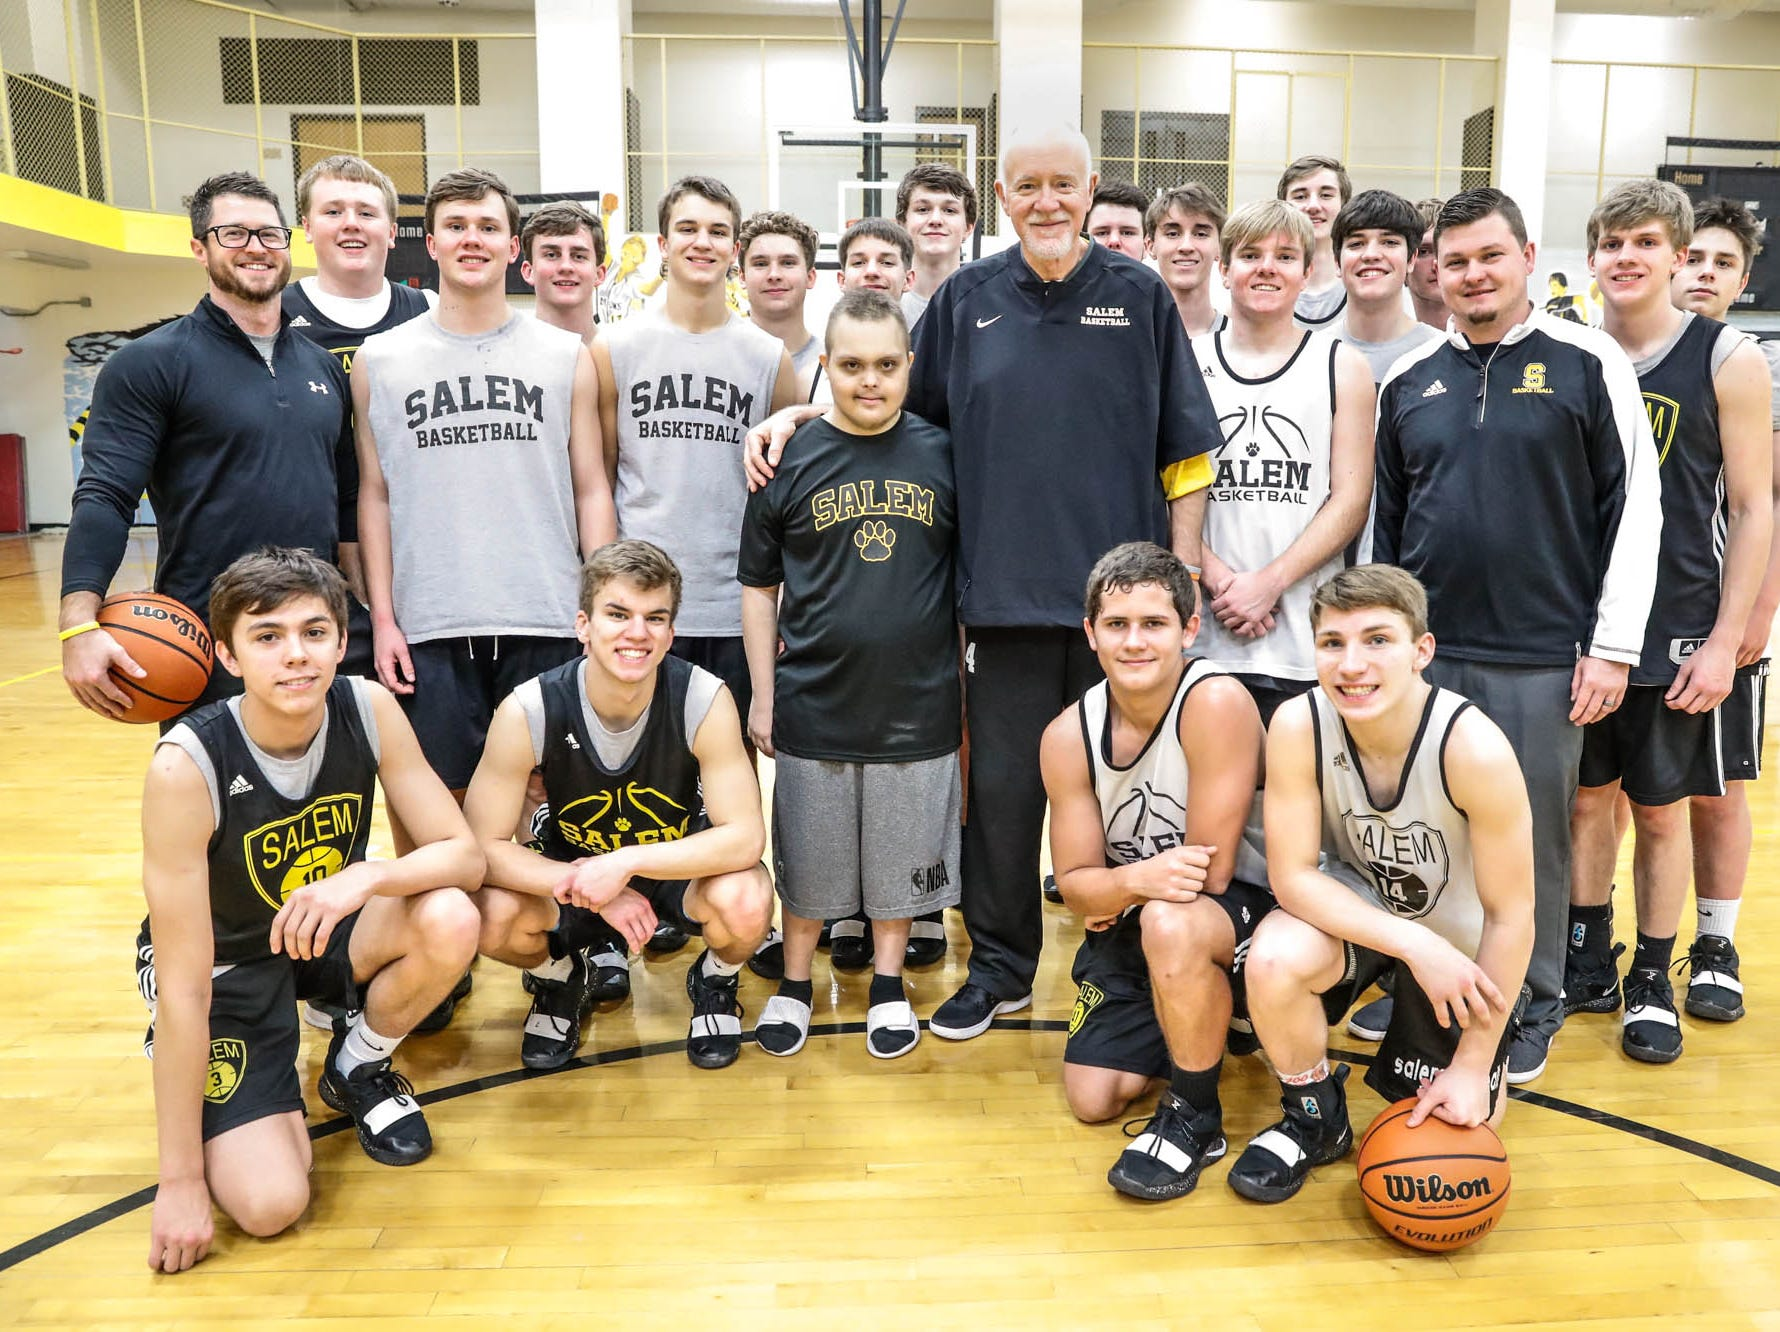 Jalen Pigg, center left, poses for a photo with step dad and Salem High School Boys Basketball Coach, Mike Brown, center right, with the boys basketball team at Salem High School in Salem Ind. on Tuesday, Jan. 23, 2019. Jalen, who was born with Down Syndrome, is now battling a form of leukemia but has a lot of support from the team and his family.